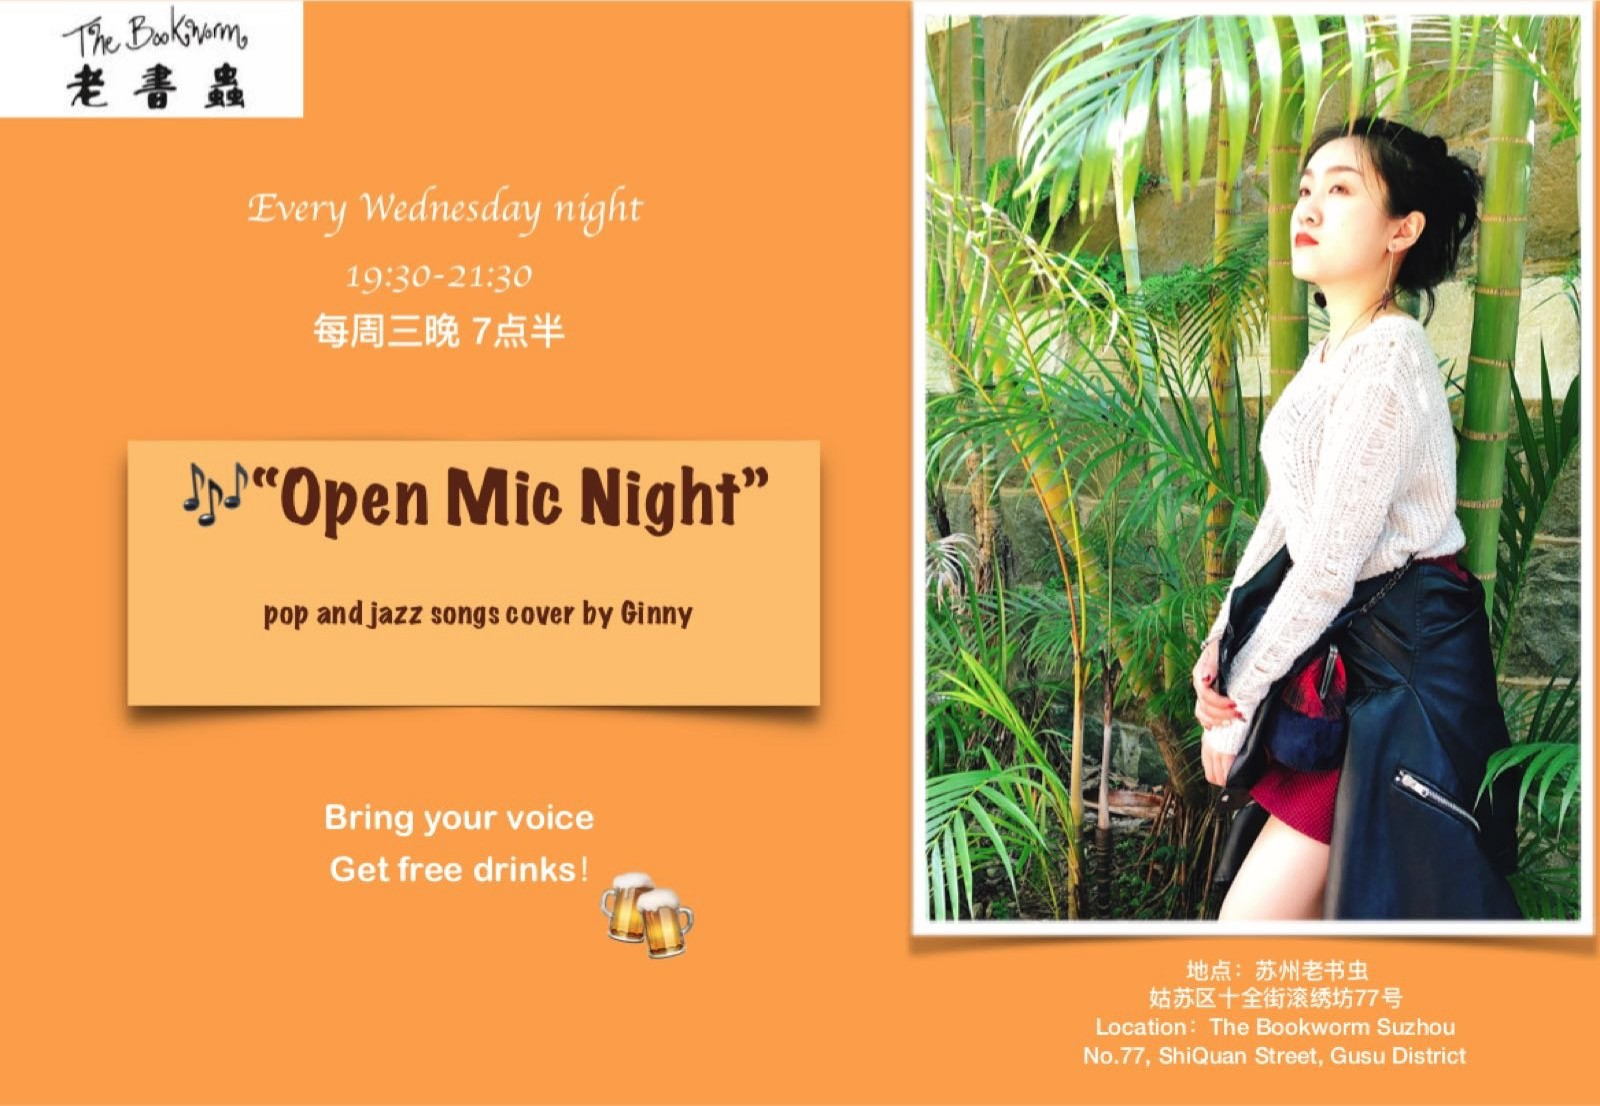 Open Mic Night at The Bookworm